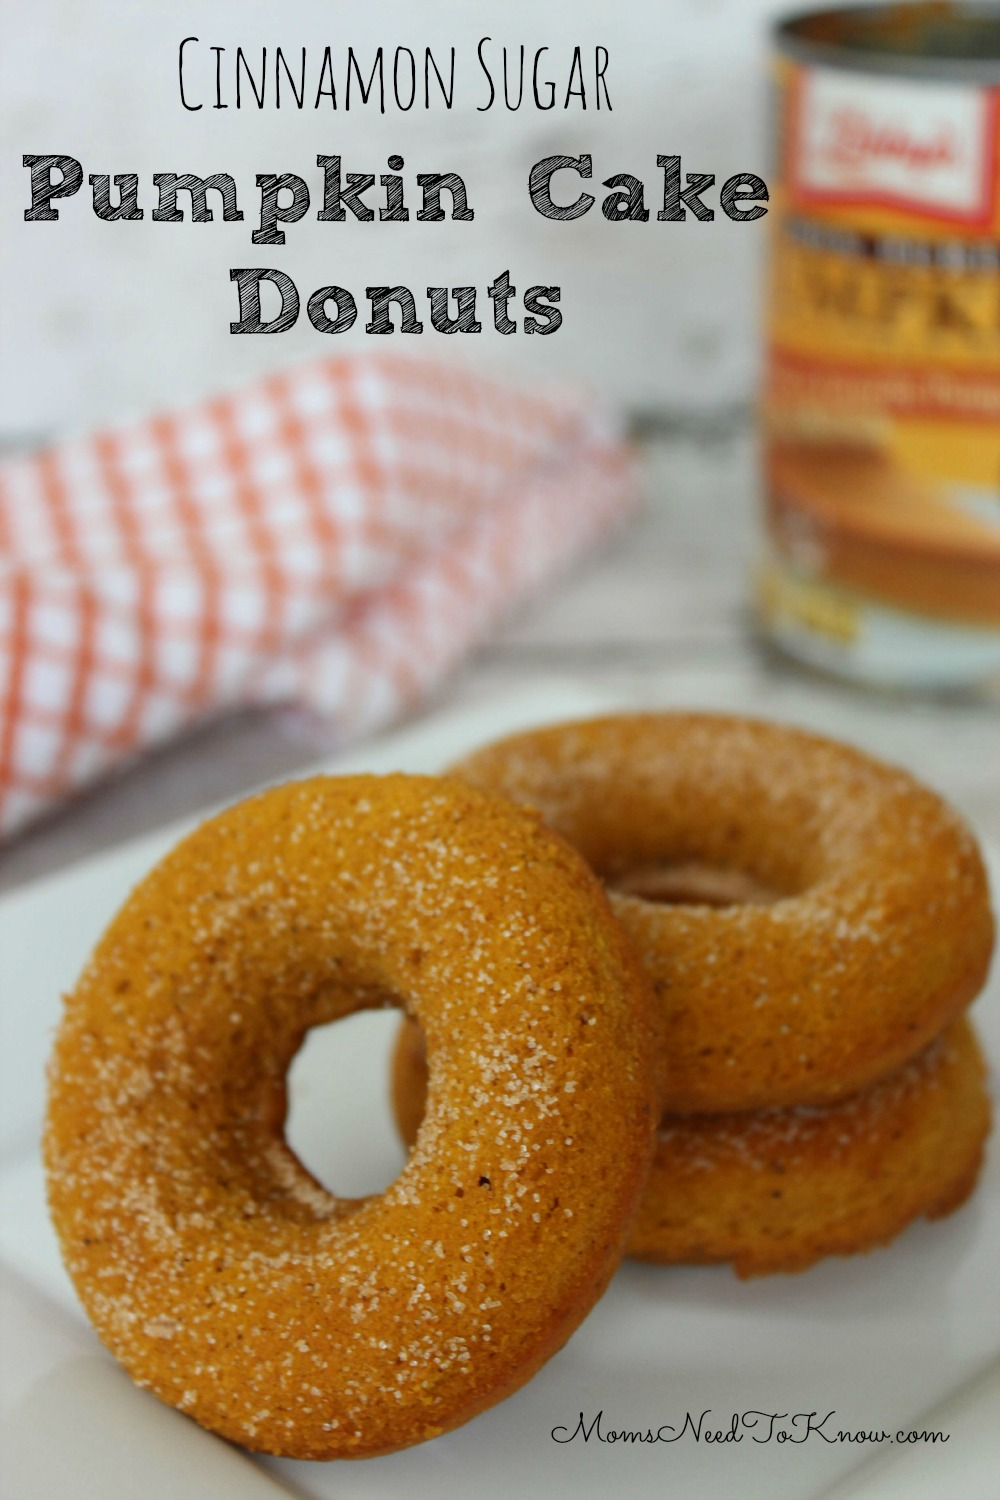 With the right recipe, baked donuts are so much better than deep fried ones and these pumpkin cake donuts will quickly become your go-to Fall breakfast!